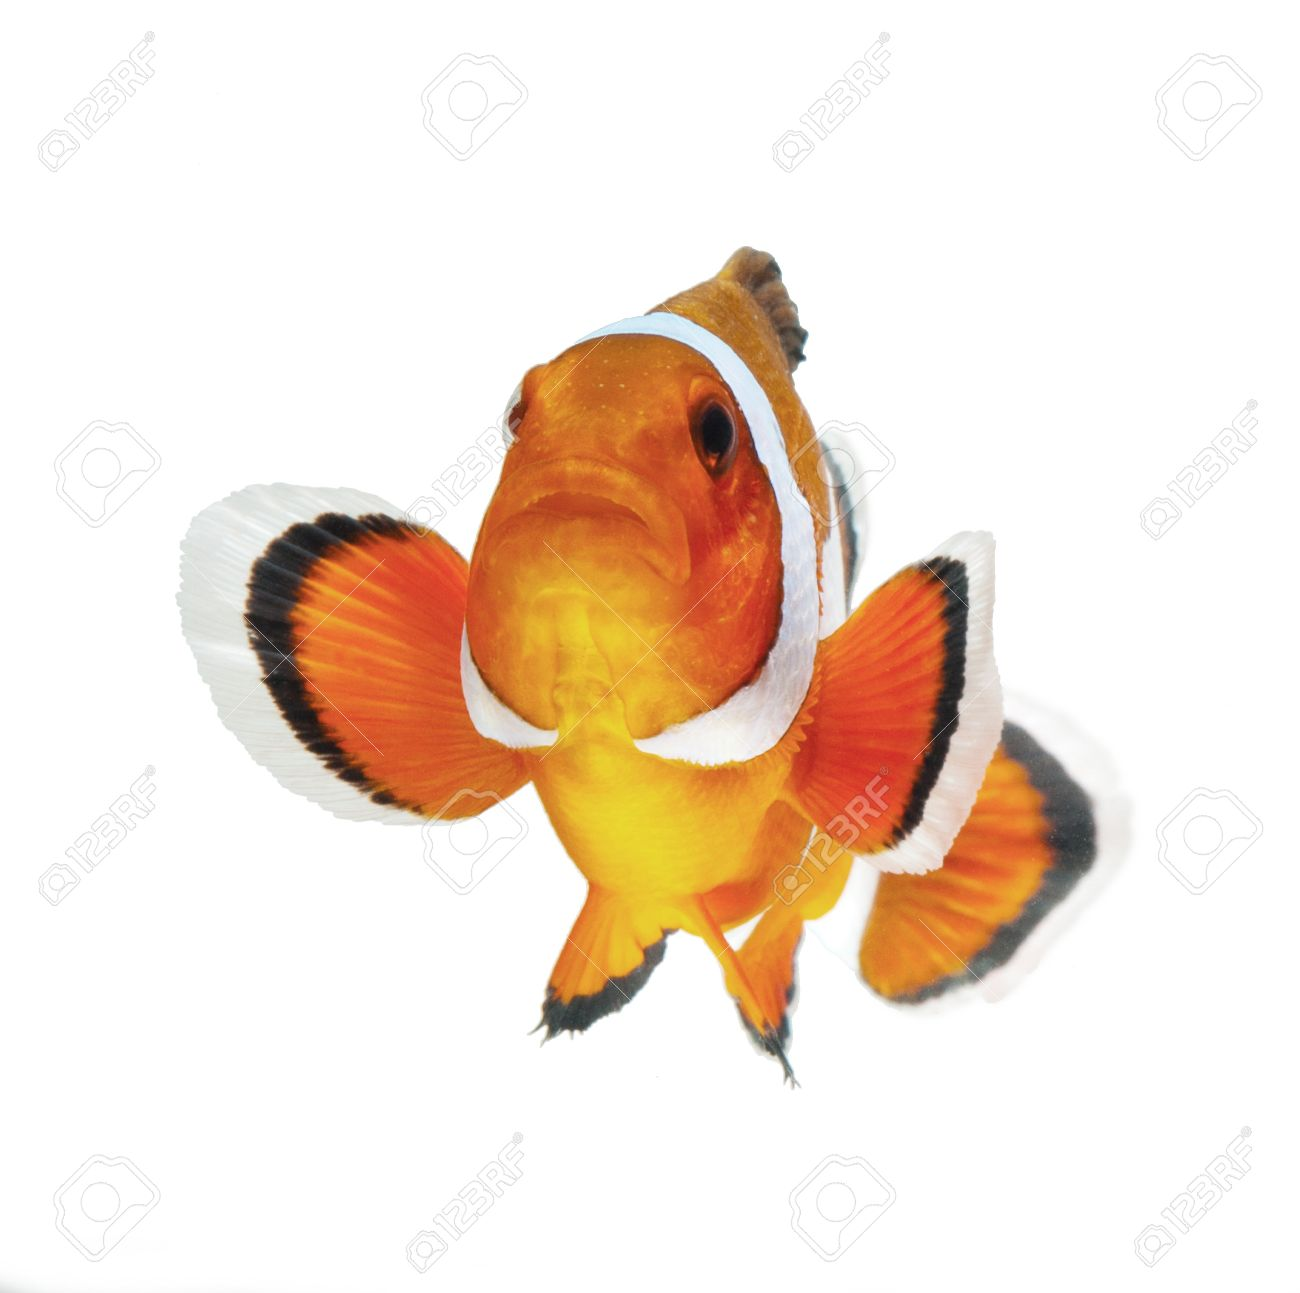 clown fish isolated on white background Stock Photo - 11108040